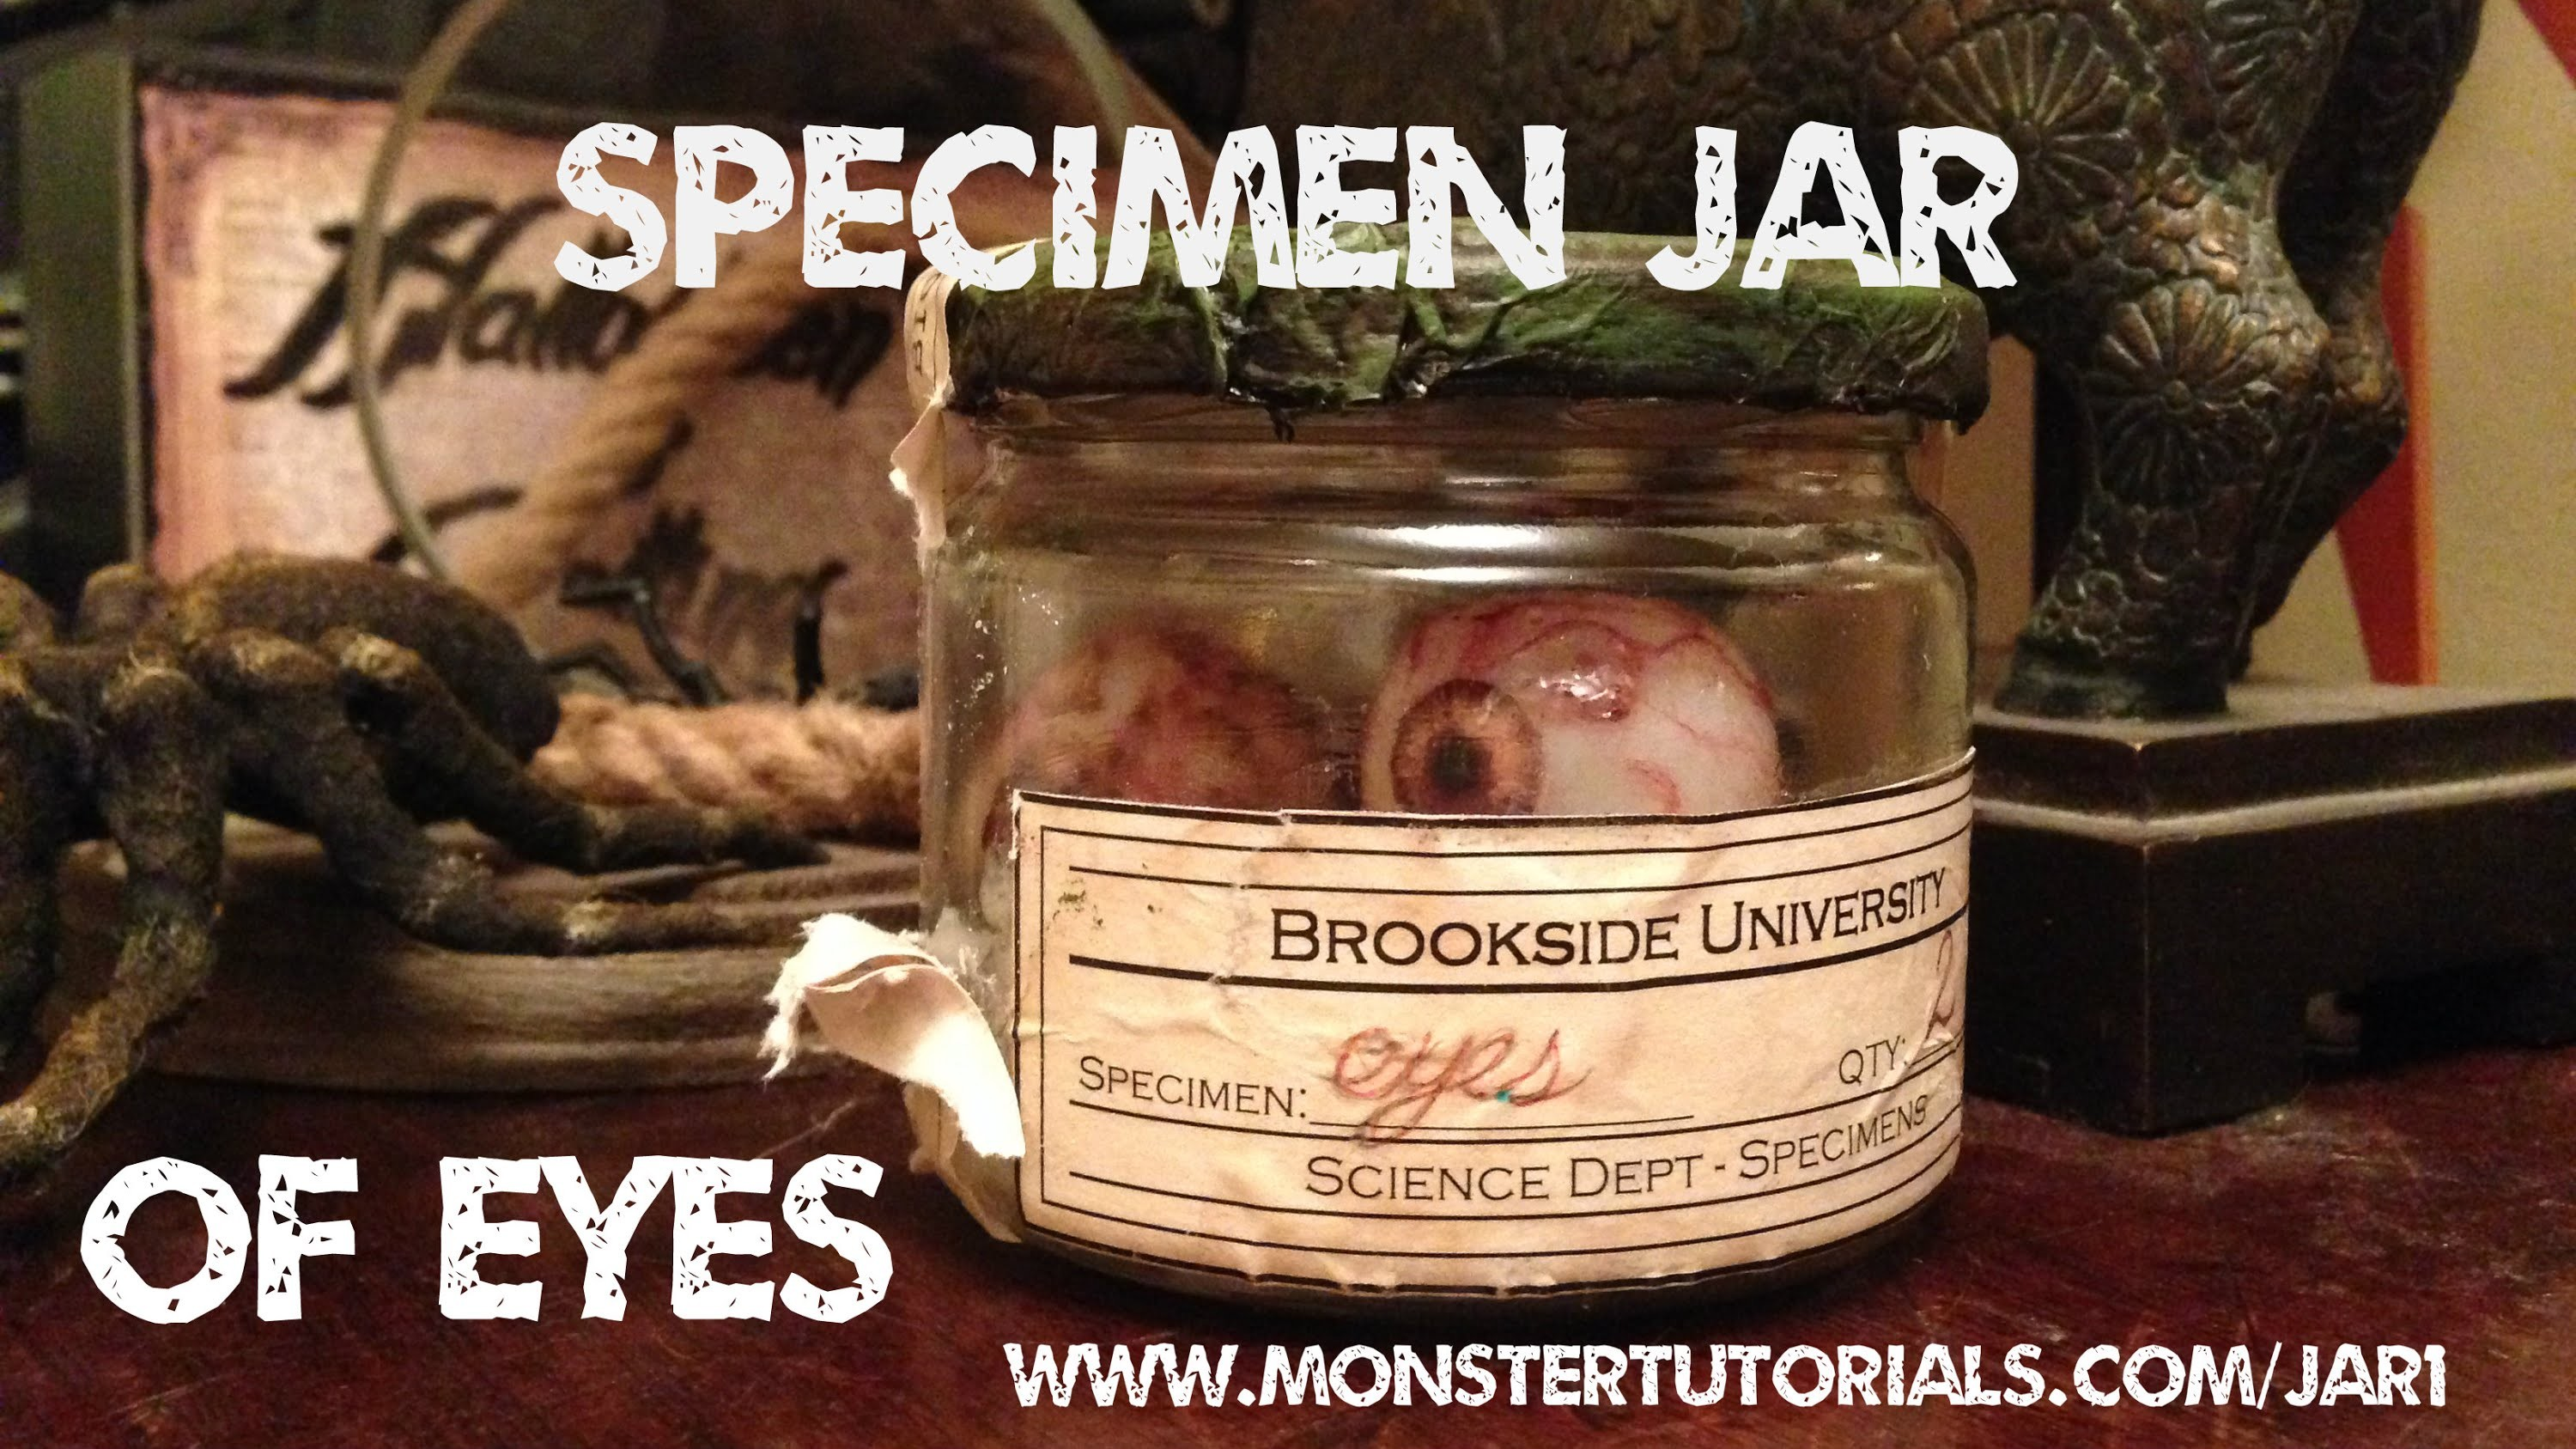 Www.monstertutorials.com - Vintage Specimen Jar Of Eyeballs Tutorial